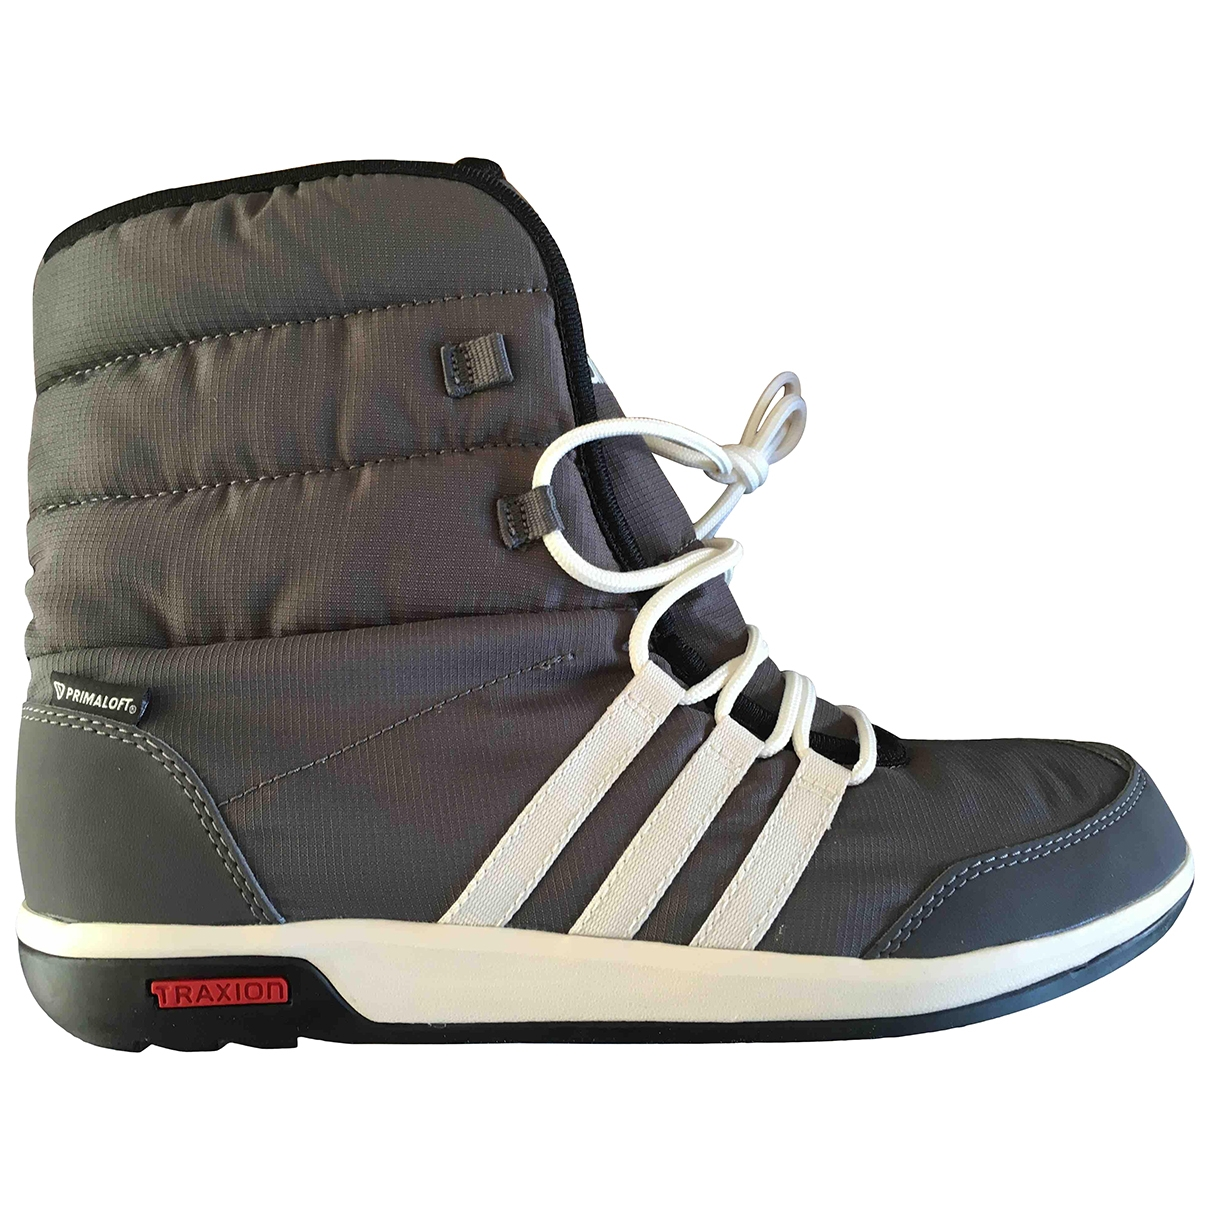 Adidas \N Grey Cloth Ankle boots for Women 8 UK